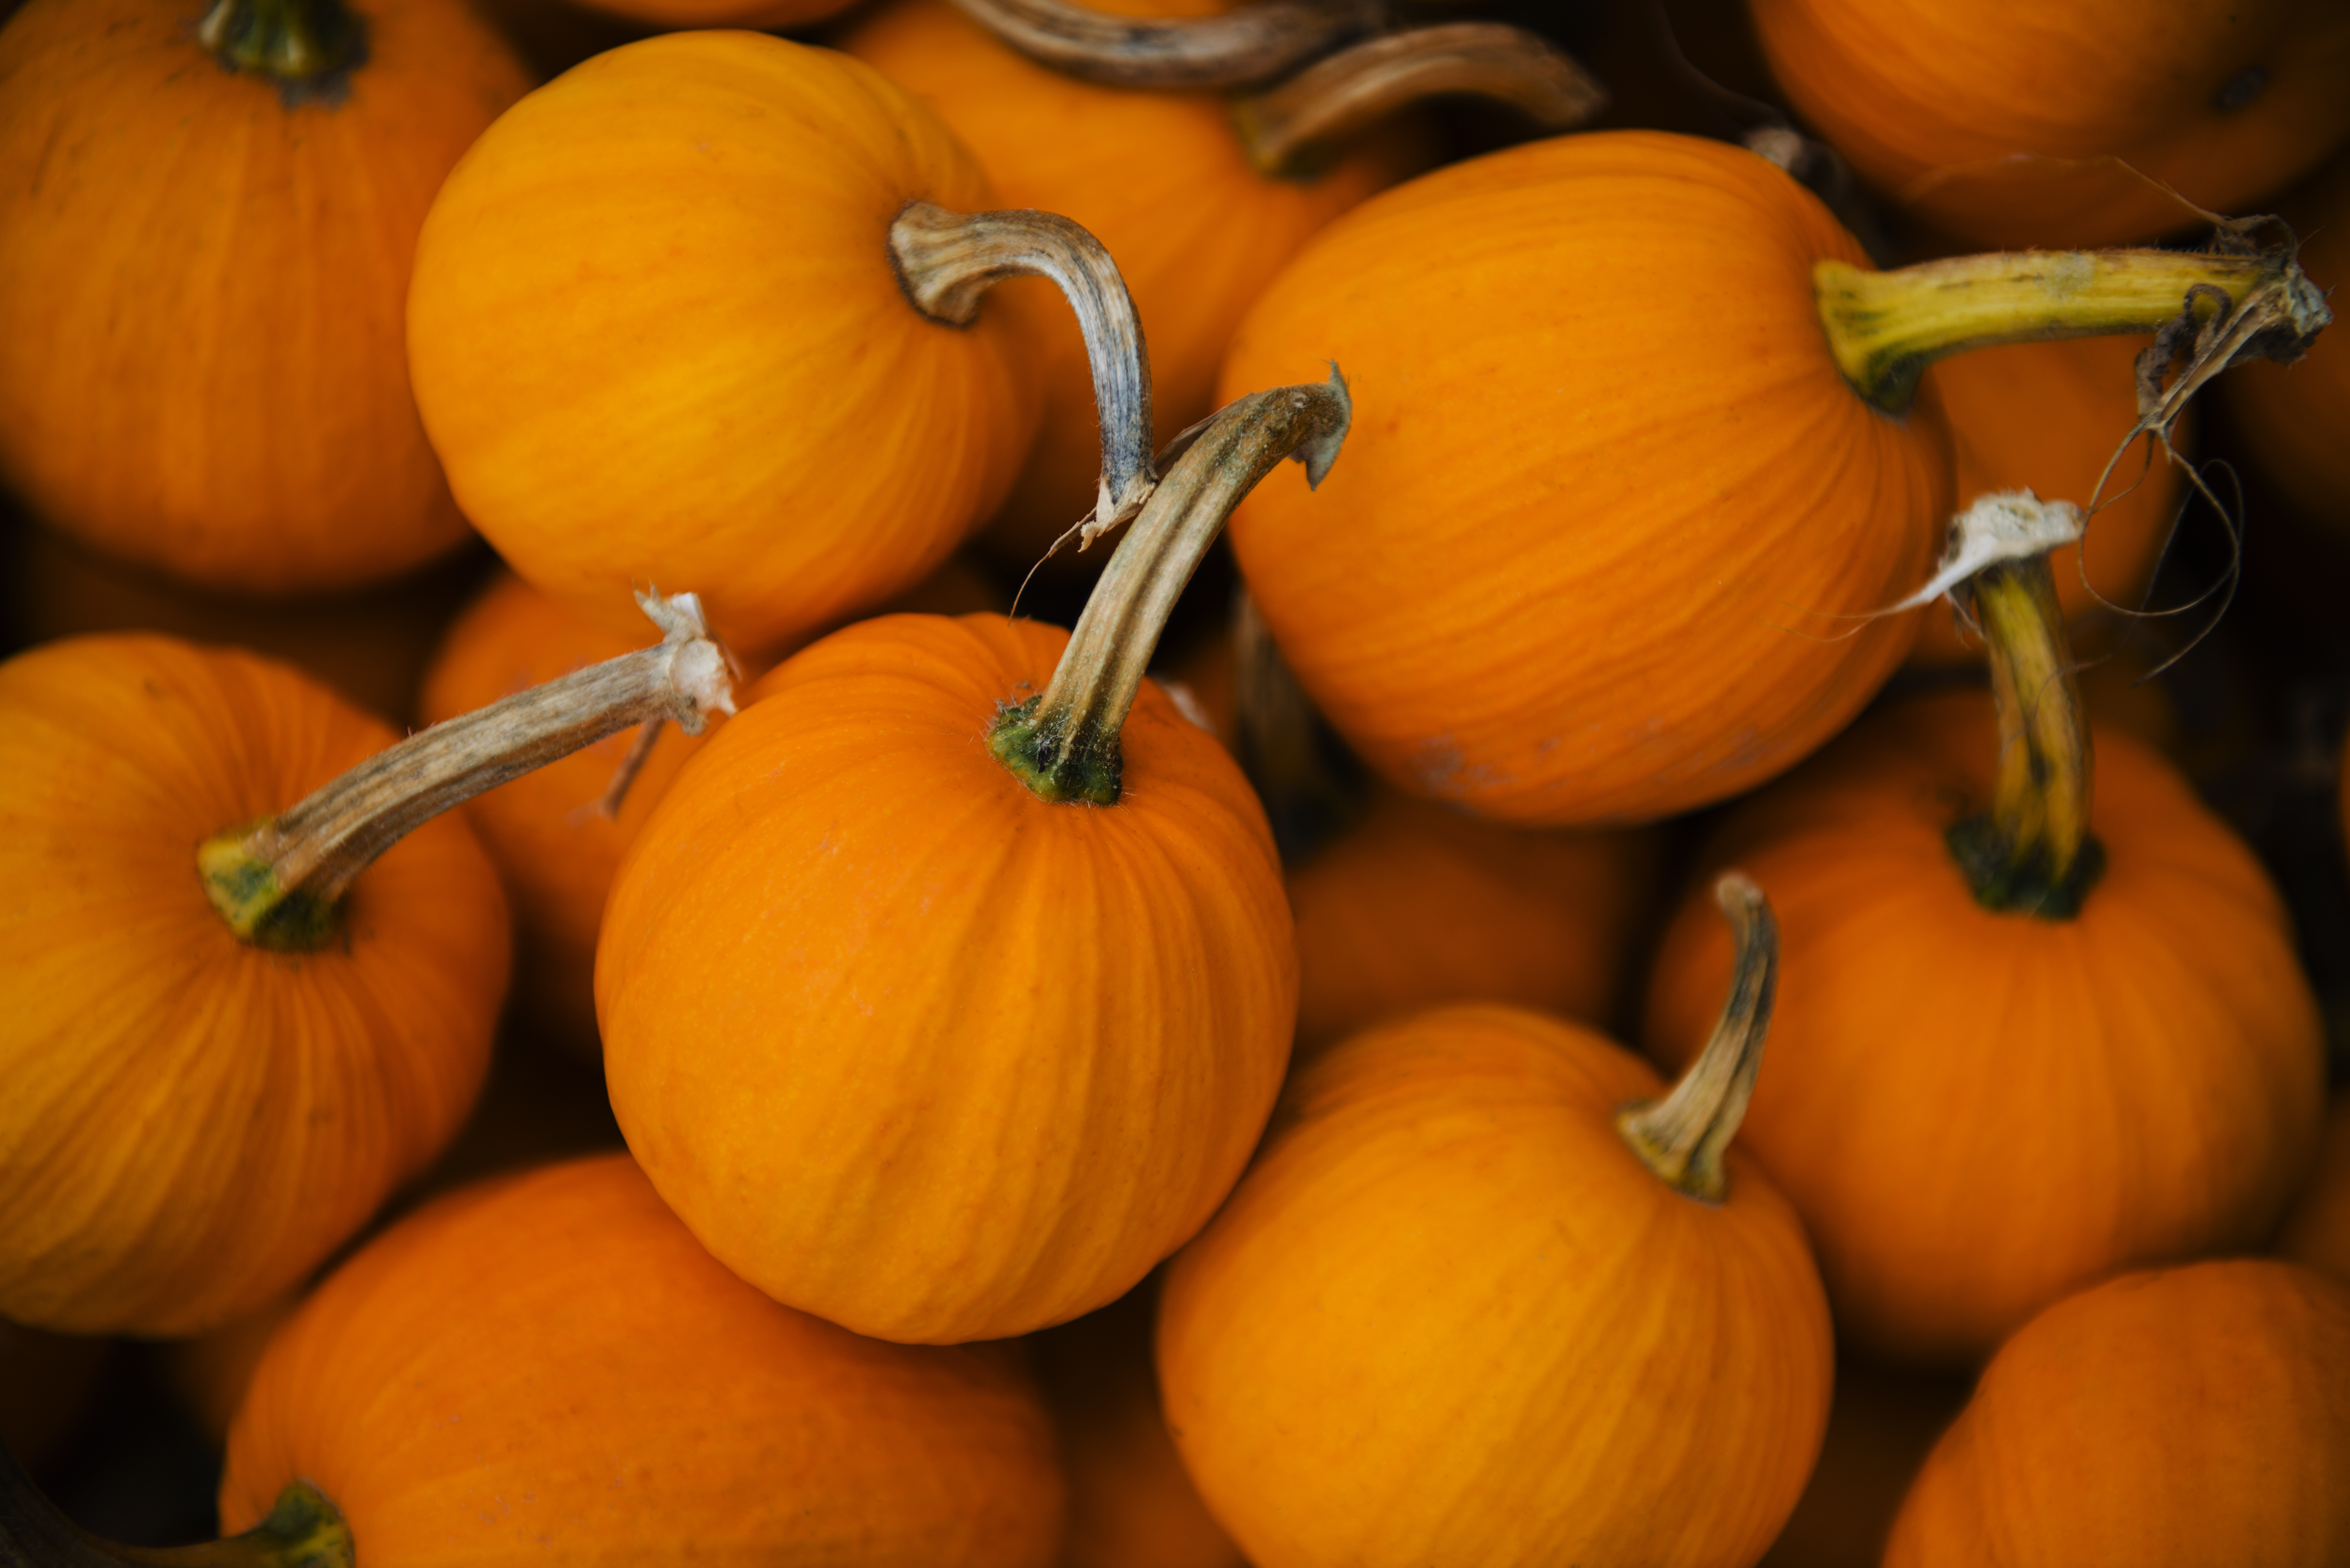 October is the uncontested best time to get a pumpkin, especially if you plan on carving it for Halloween.